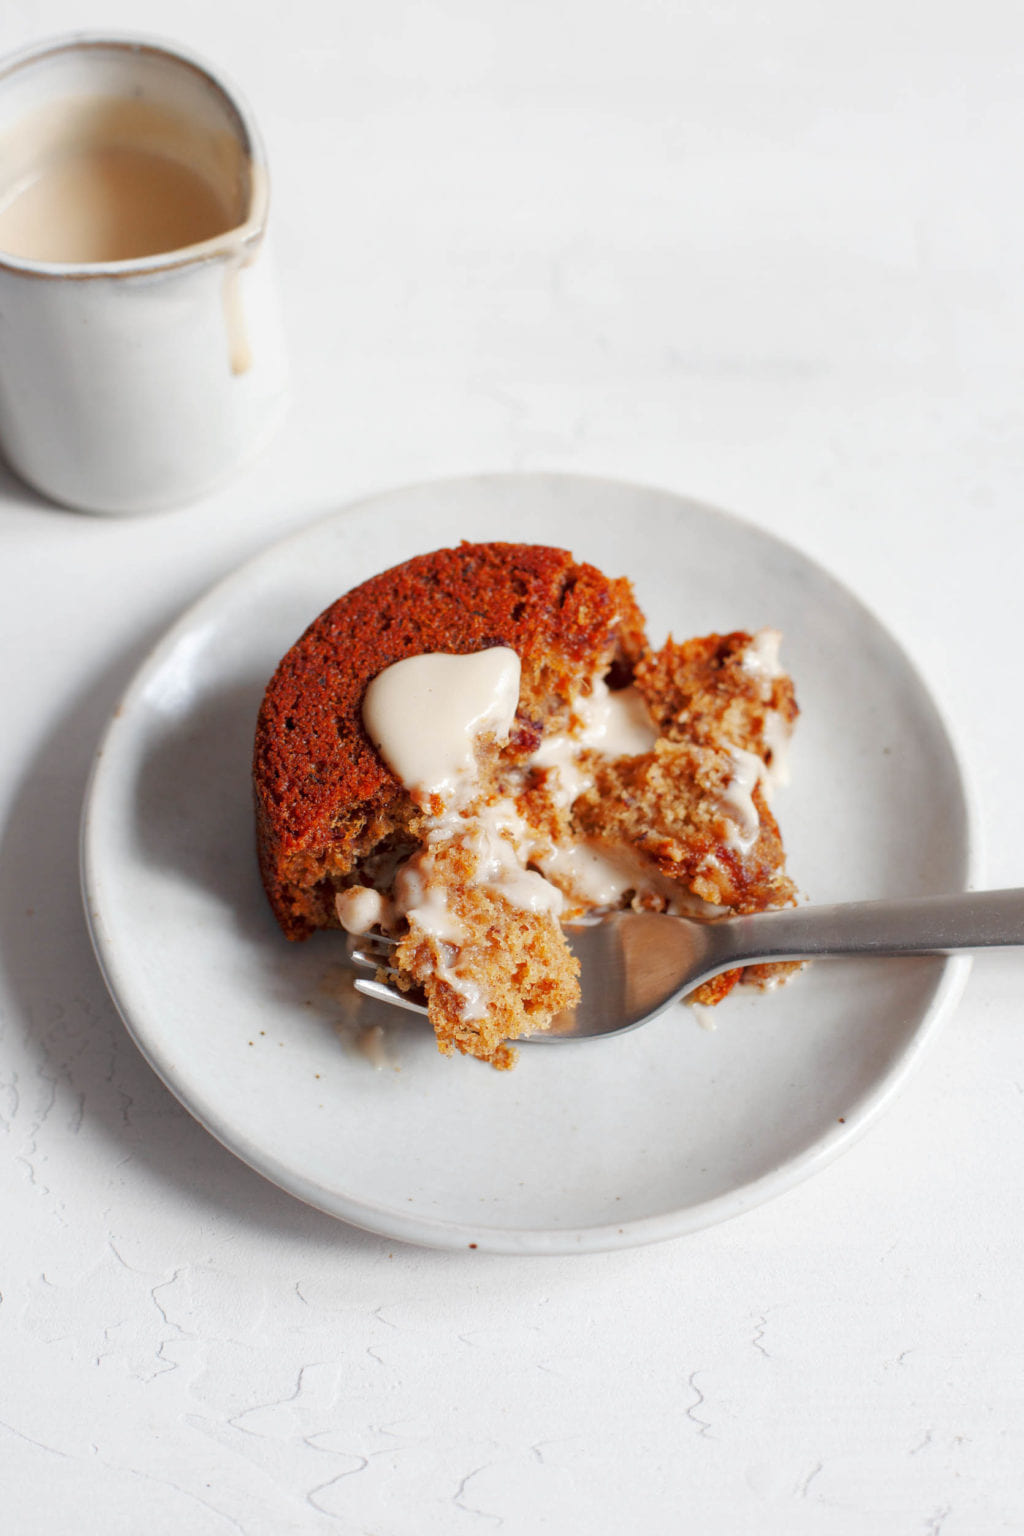 The round vegan sticky toffee pudding is covered with cashew cream and cut into small pieces with a dining fork. There is more cashew cream in a small jar at the back of the dessert.